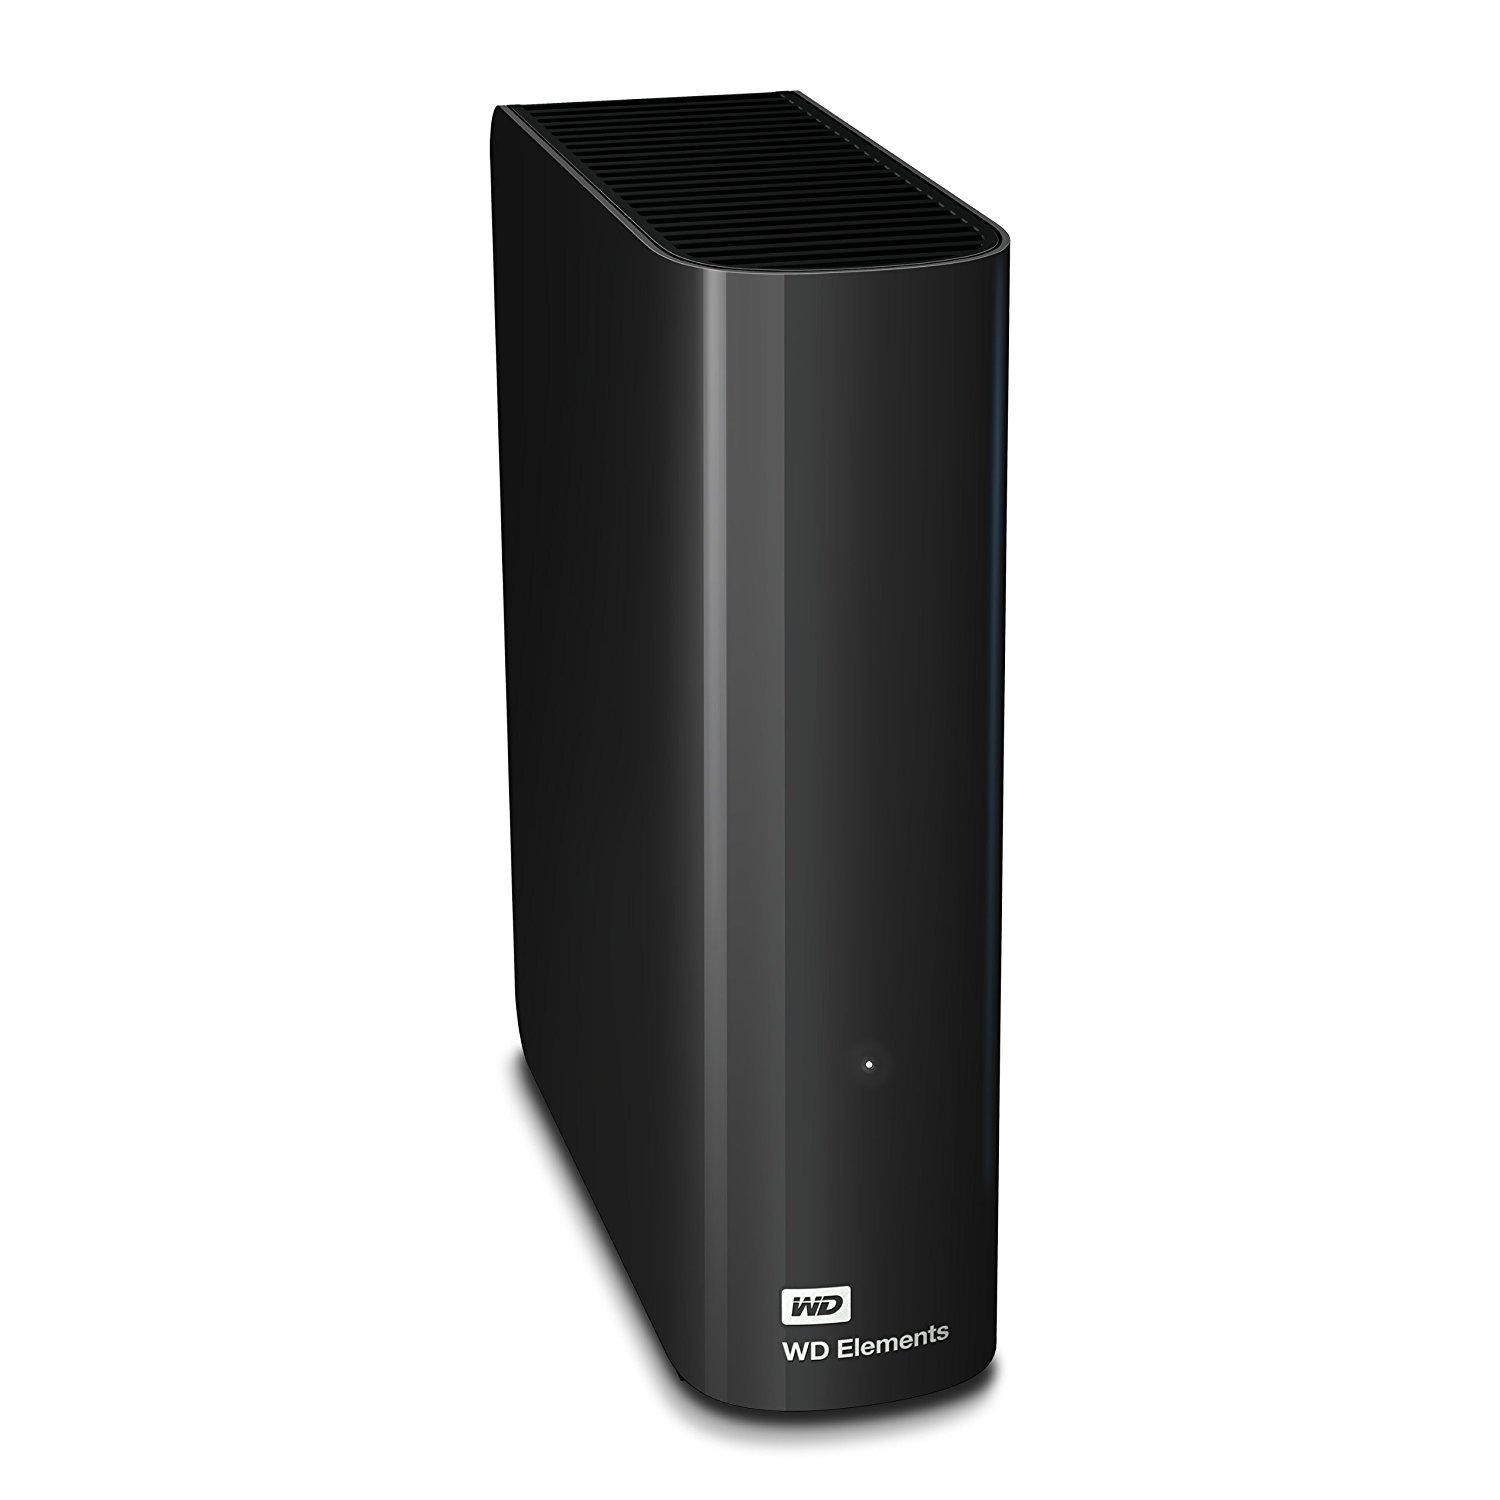 WD 3TB Elements Desktop External Hard Drive – USB 3.0 on Amazon